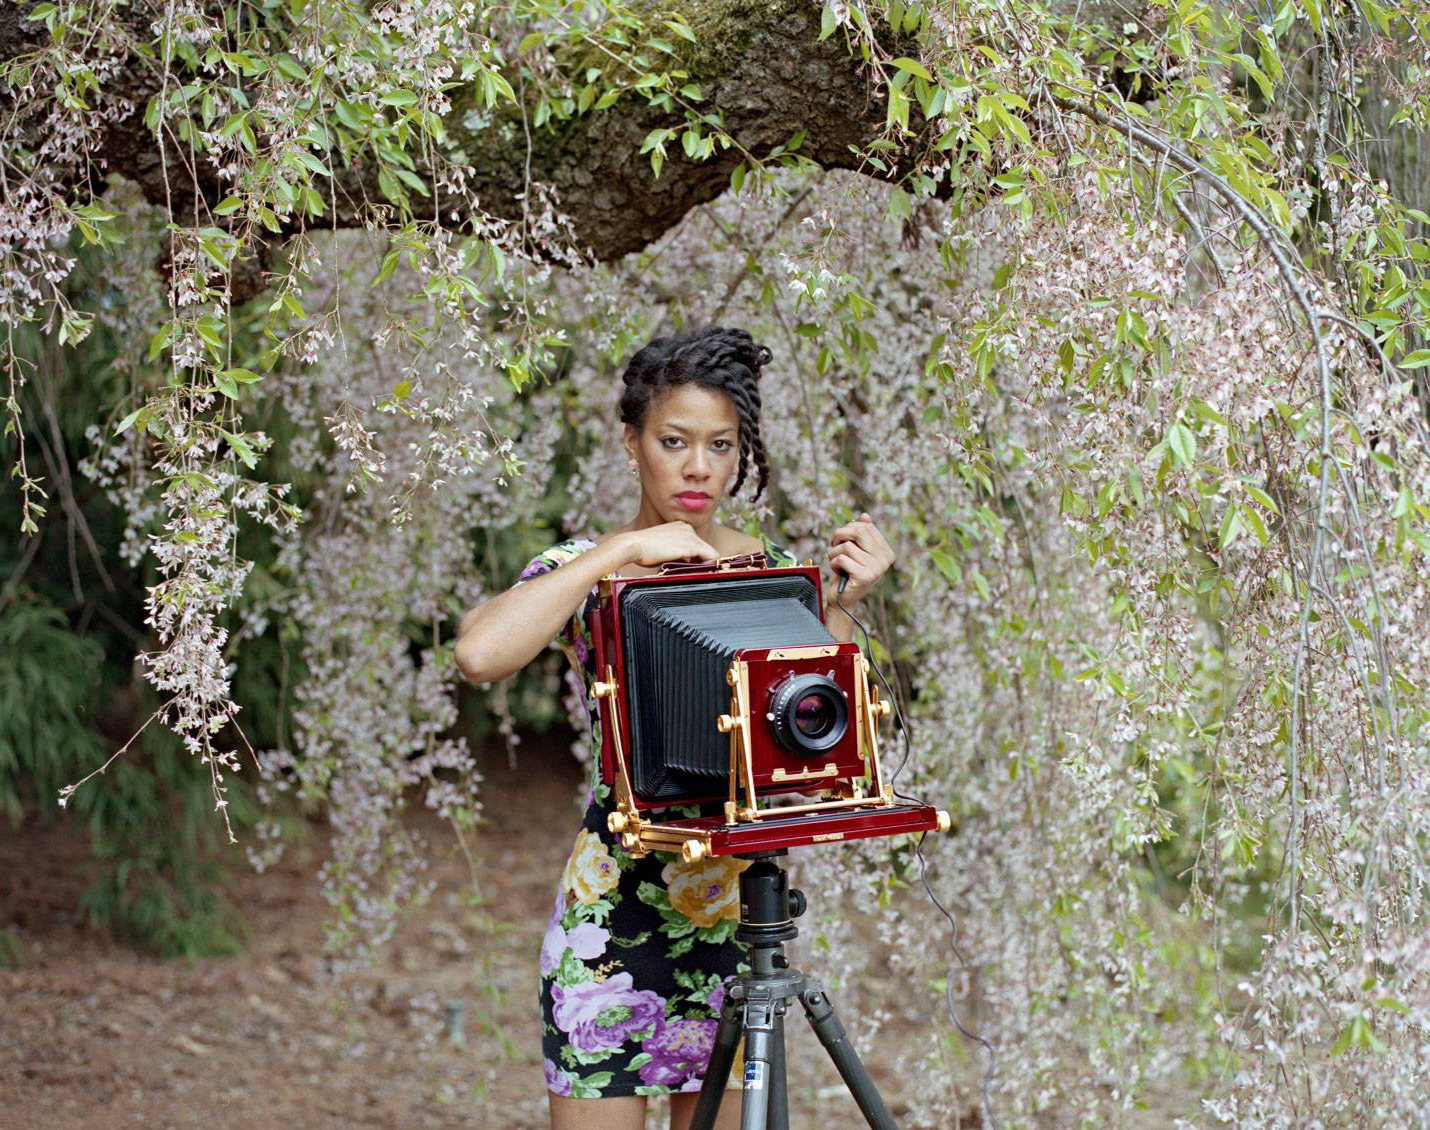 迪纳·劳森 behind a square-format camera amongst cherry blossoms